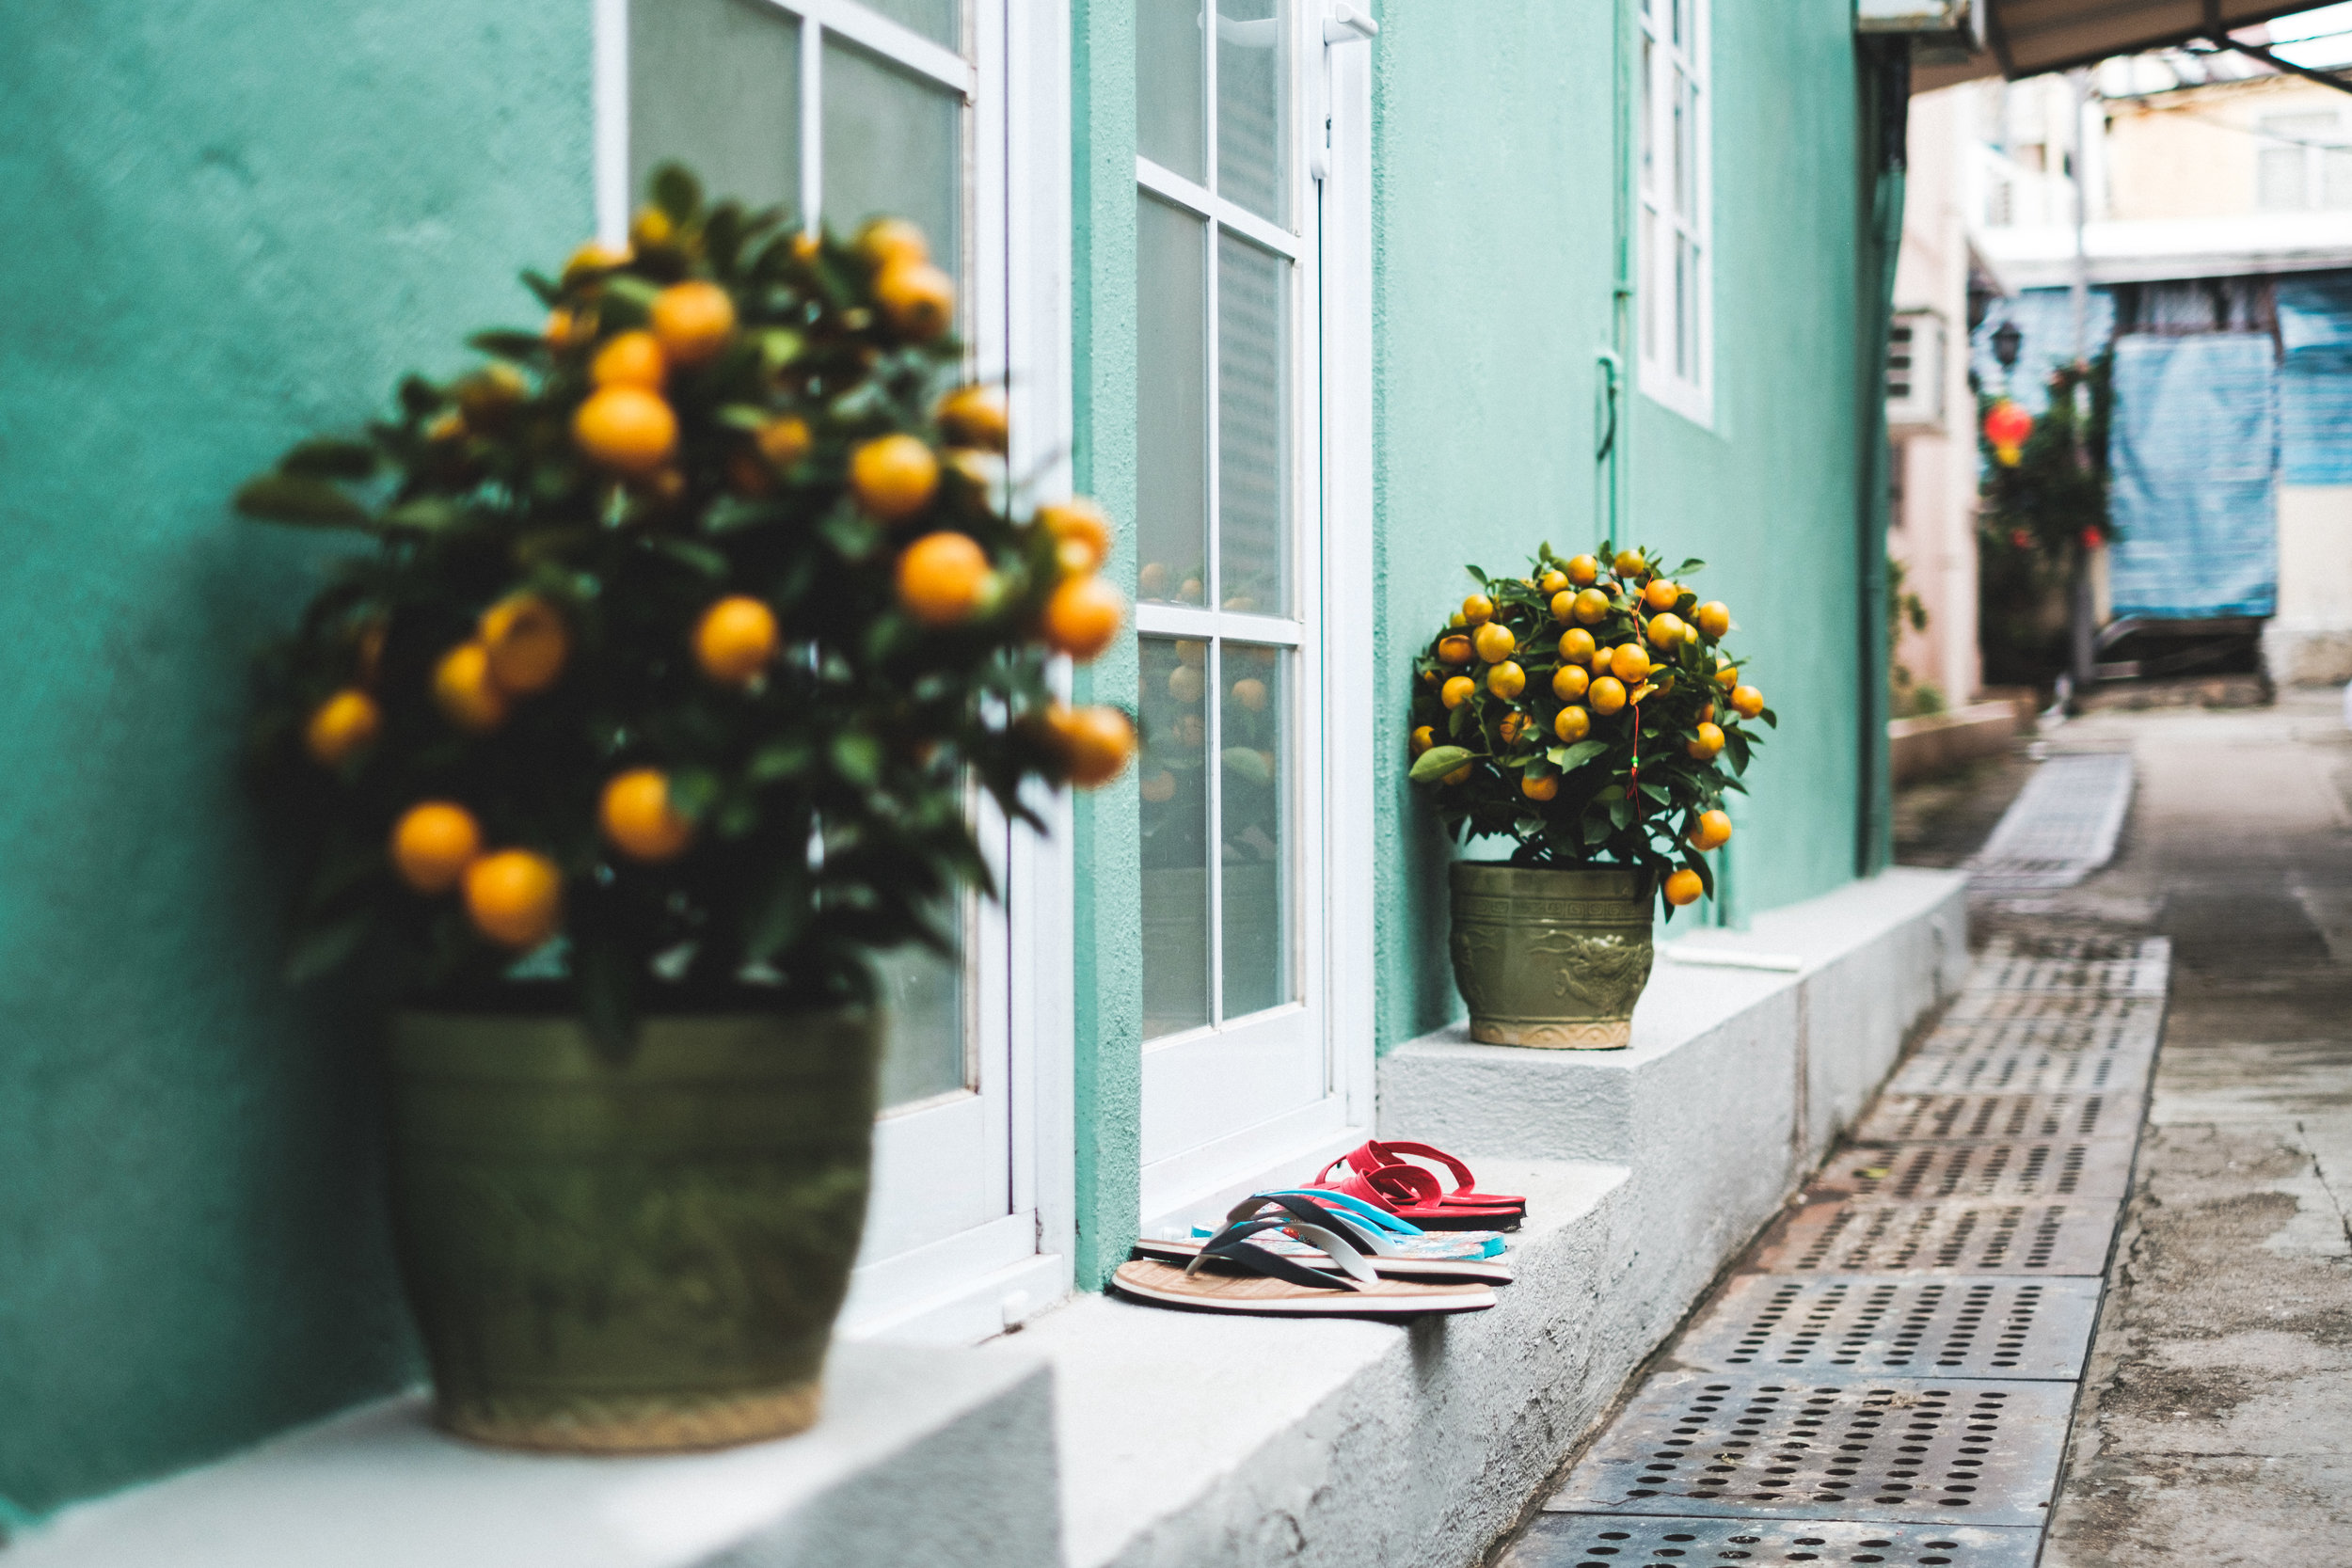 Entrance to a Home in Shek O Hong Kong with slippers and orange trees outside